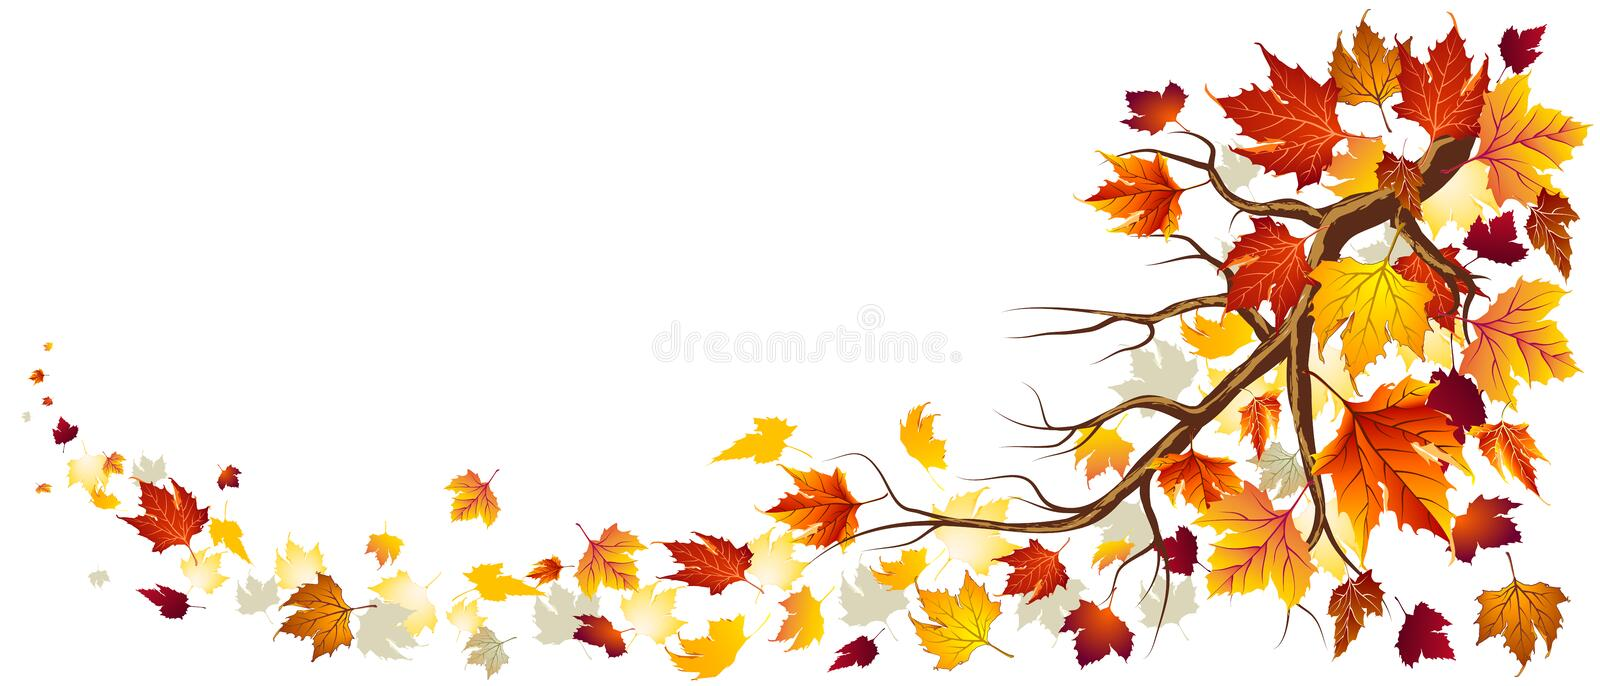 Branch With Autumn Leaves stock illustration